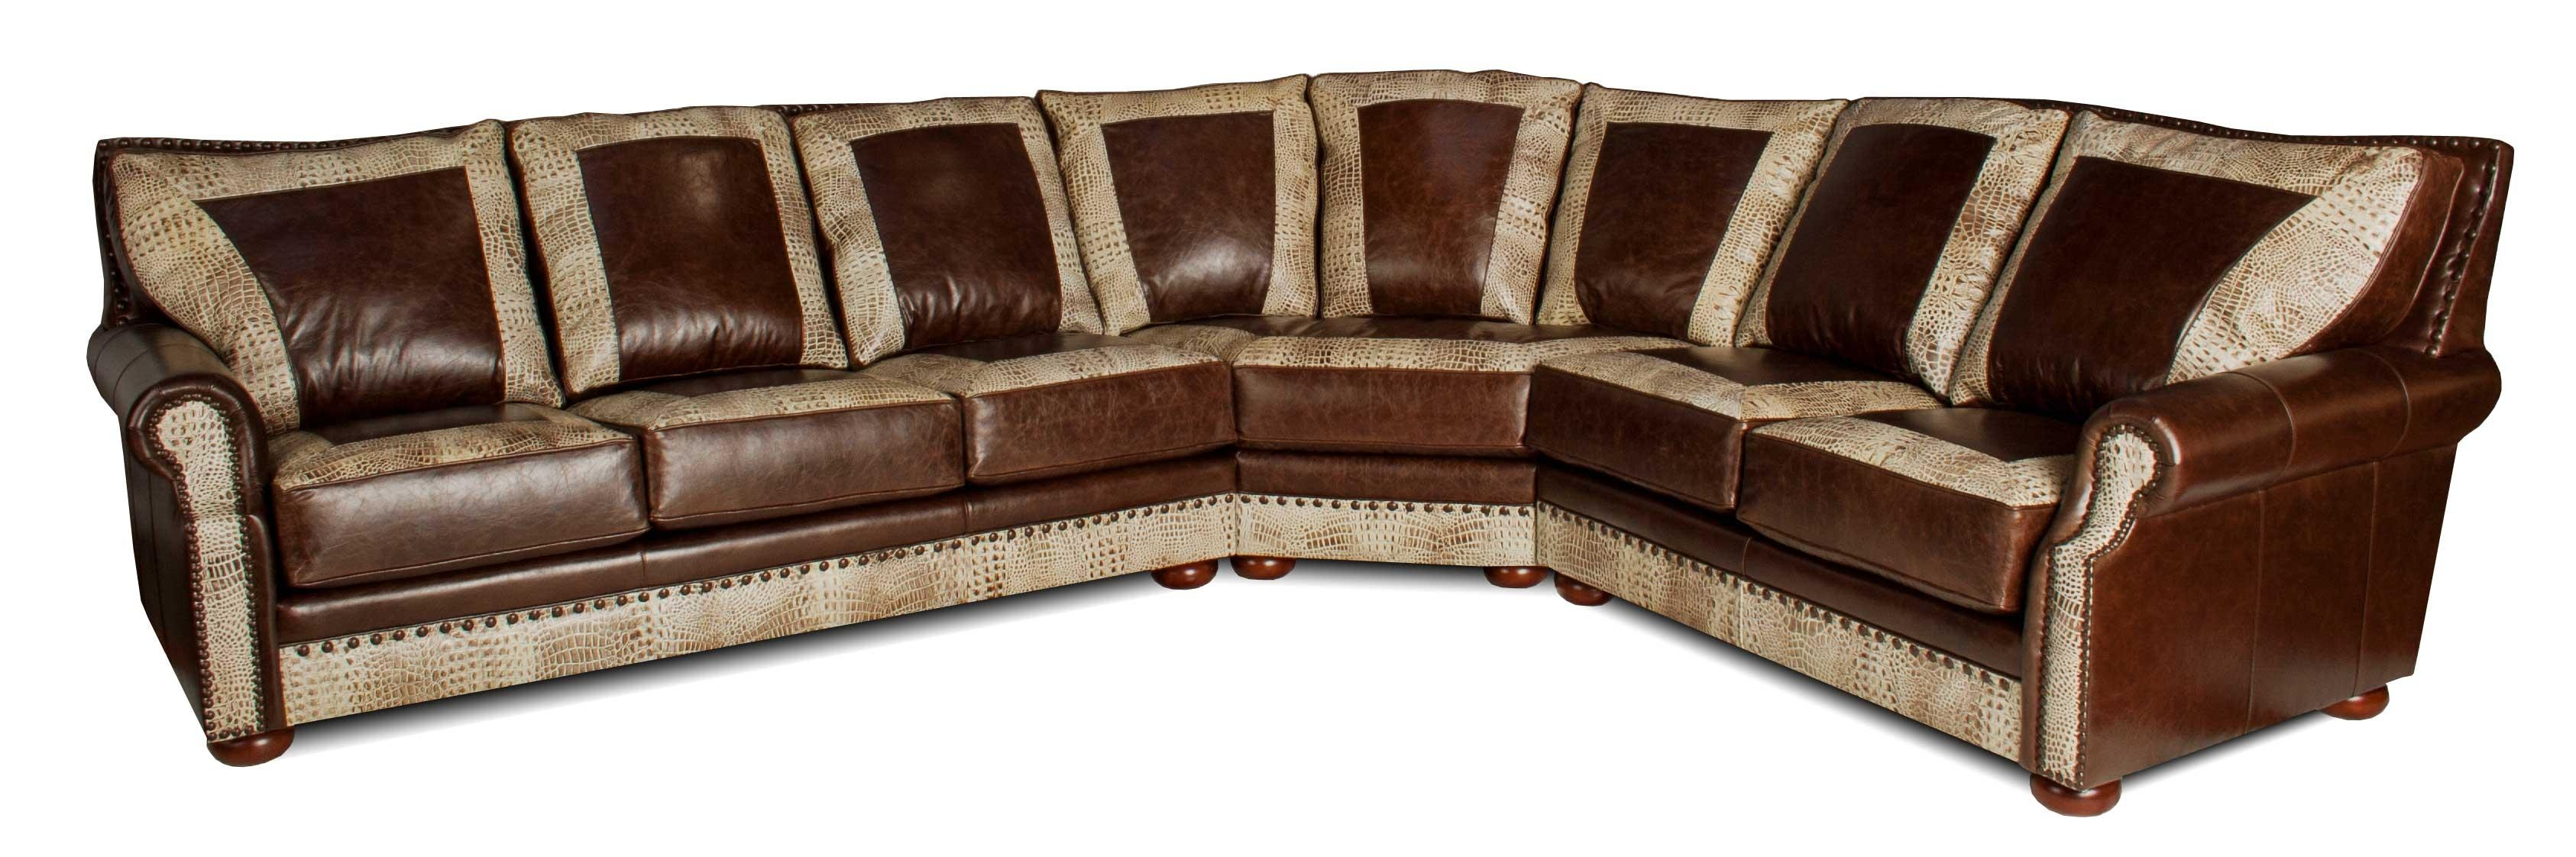 15 Photos Custom Leather Sectional Sofa Ideas